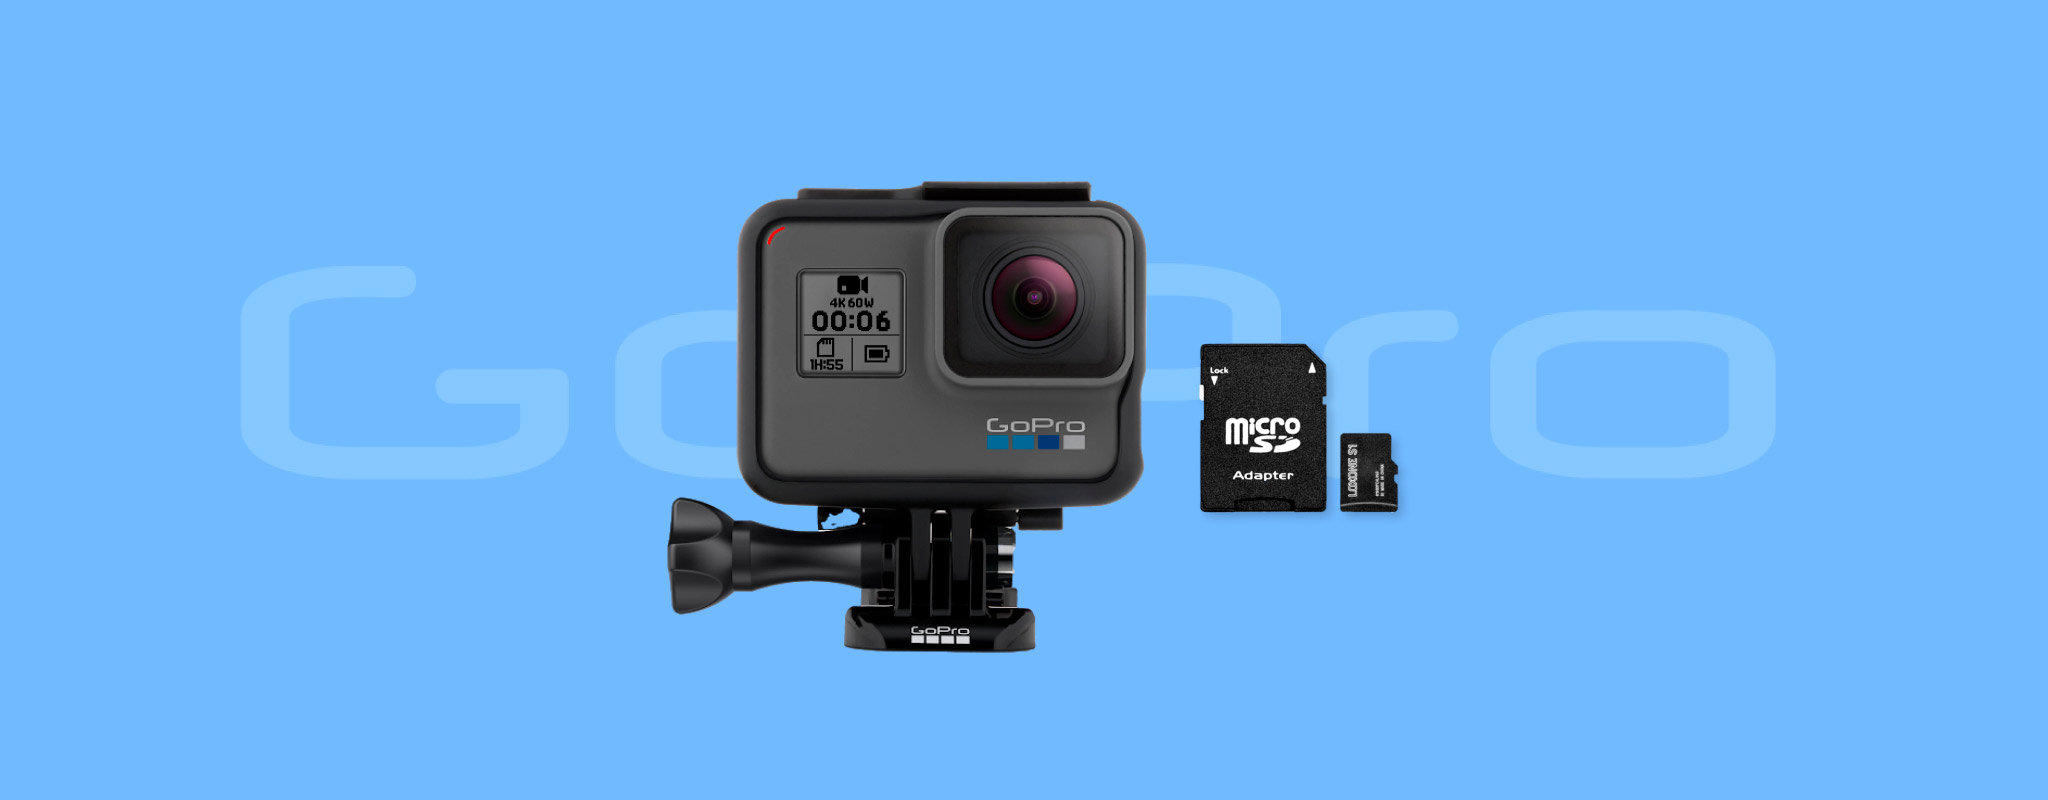 Recover deleted GoPro files